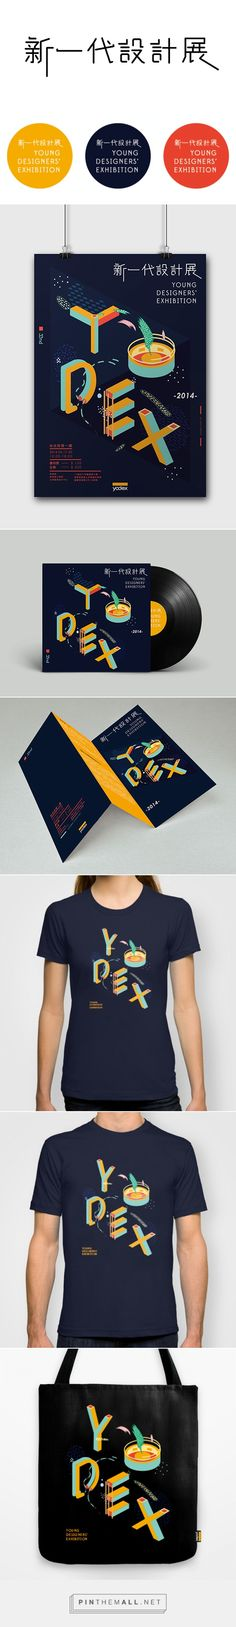 Yodex 2014 Pitch_YOUNG ORGANISM on Behance